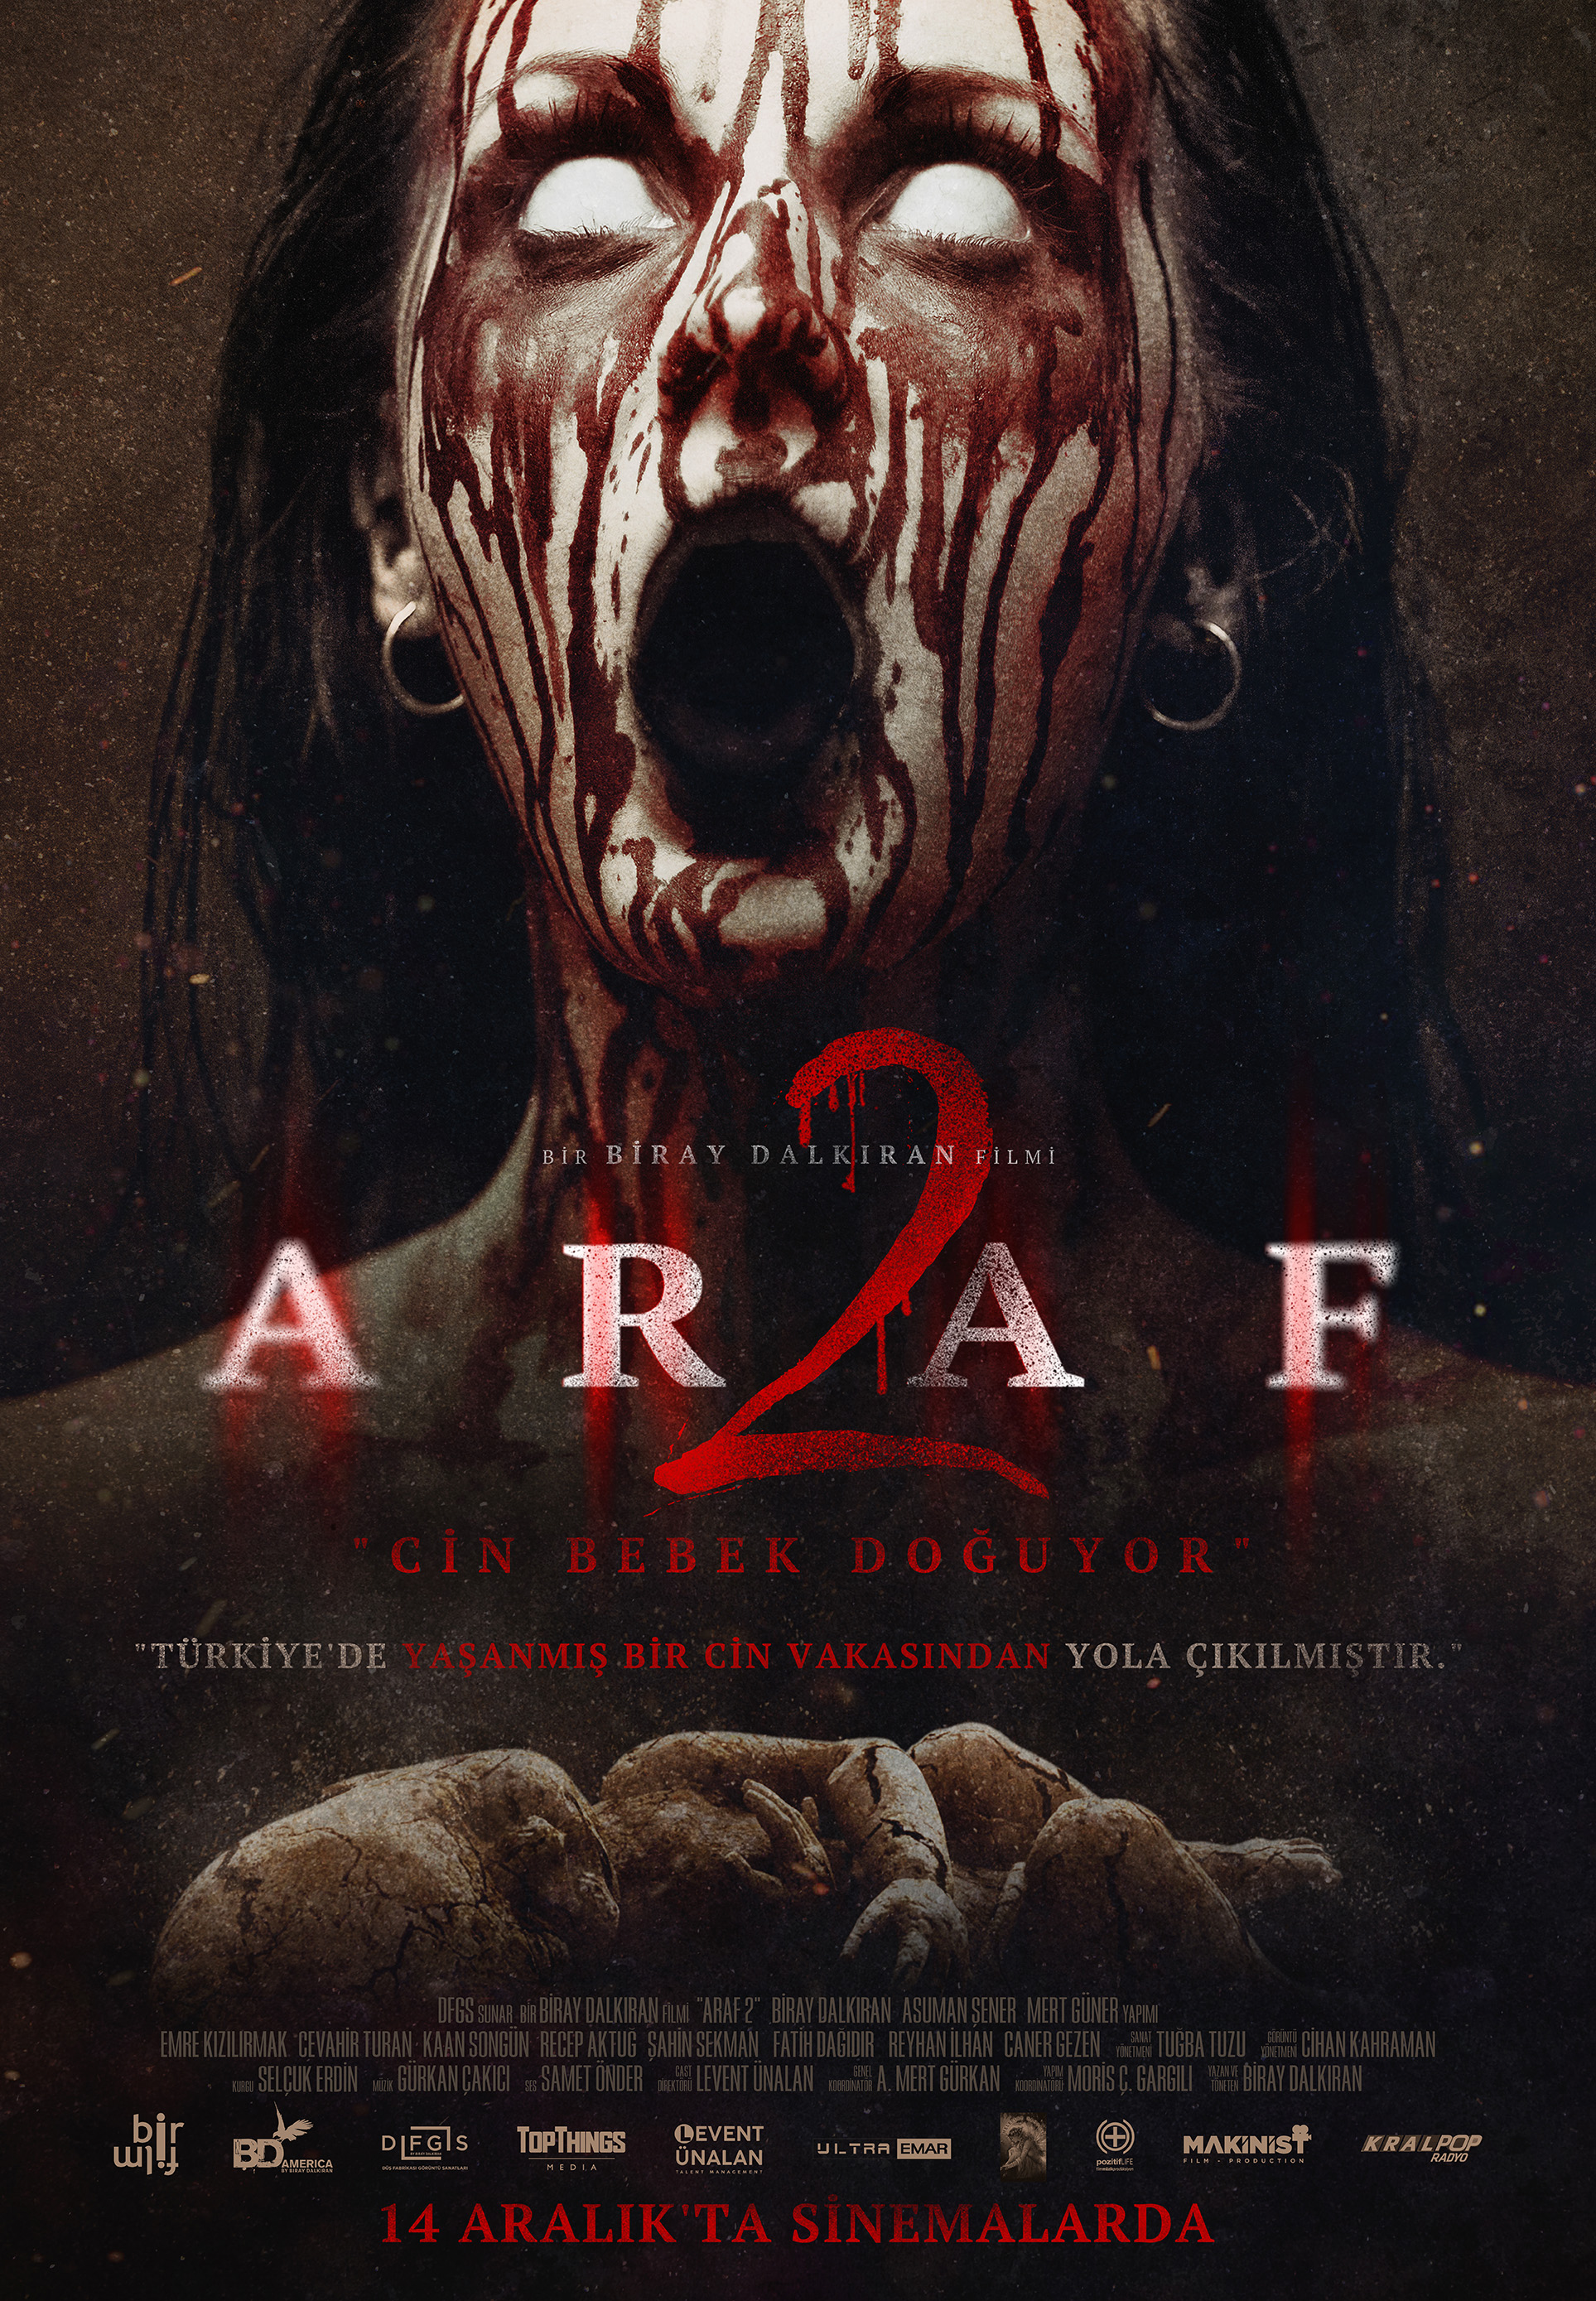 Araf 2 (2019) 720p WEB-DL [Dual Audio] [Hindi – Turkish] ESubs x264 AAC